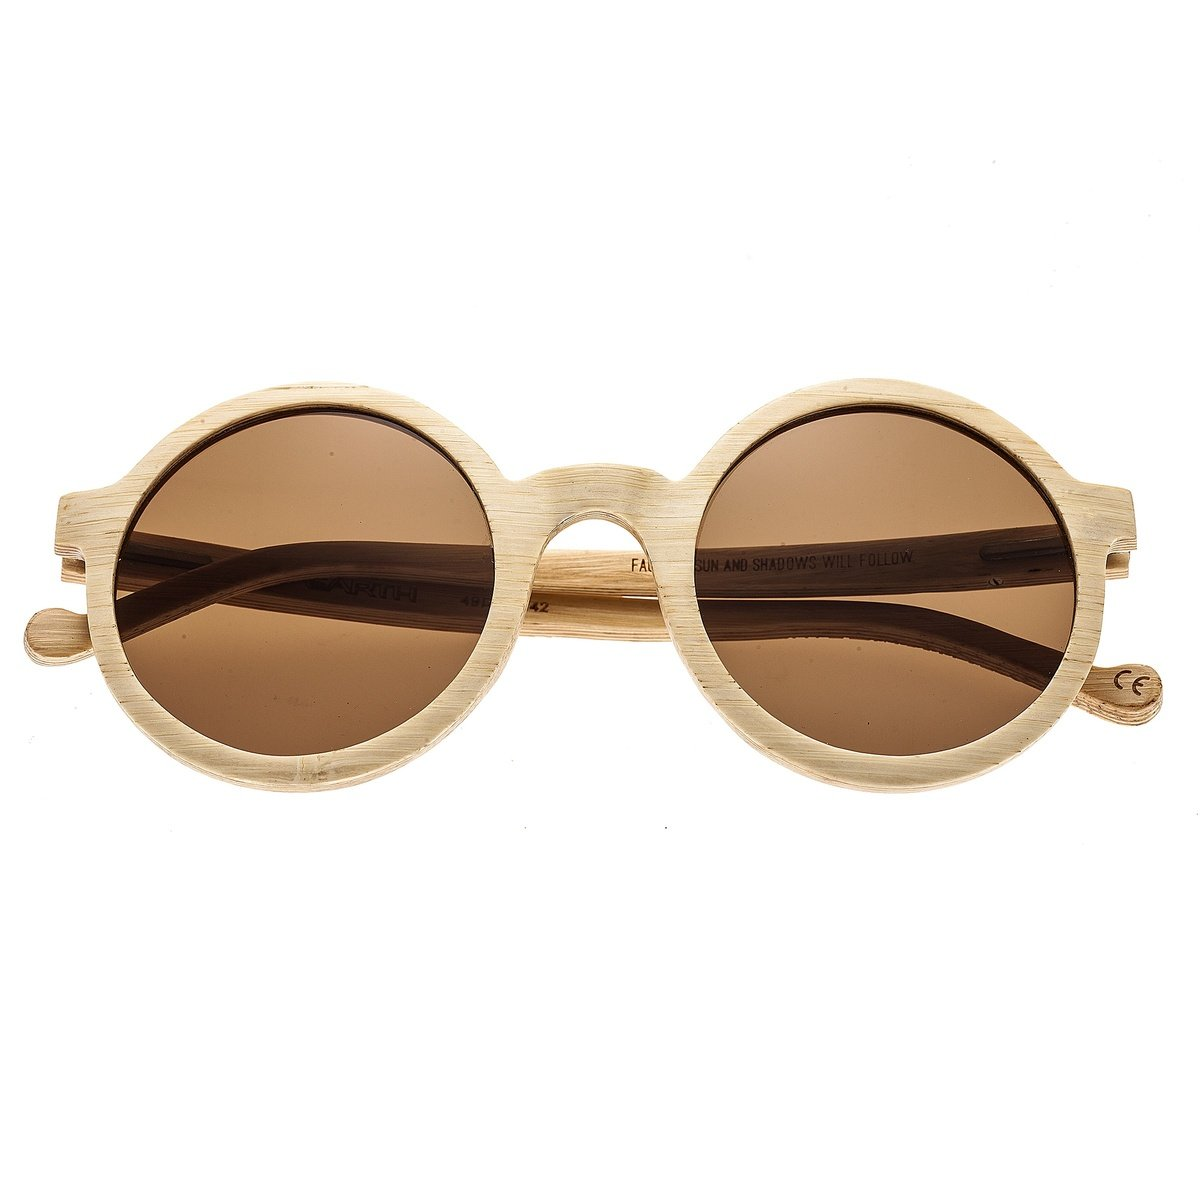 481049cd5d Earth Wood Canary Sunglasses w Polarized Lenses - Bamboo Brown - Earth Wood  Goods - Wood Watches